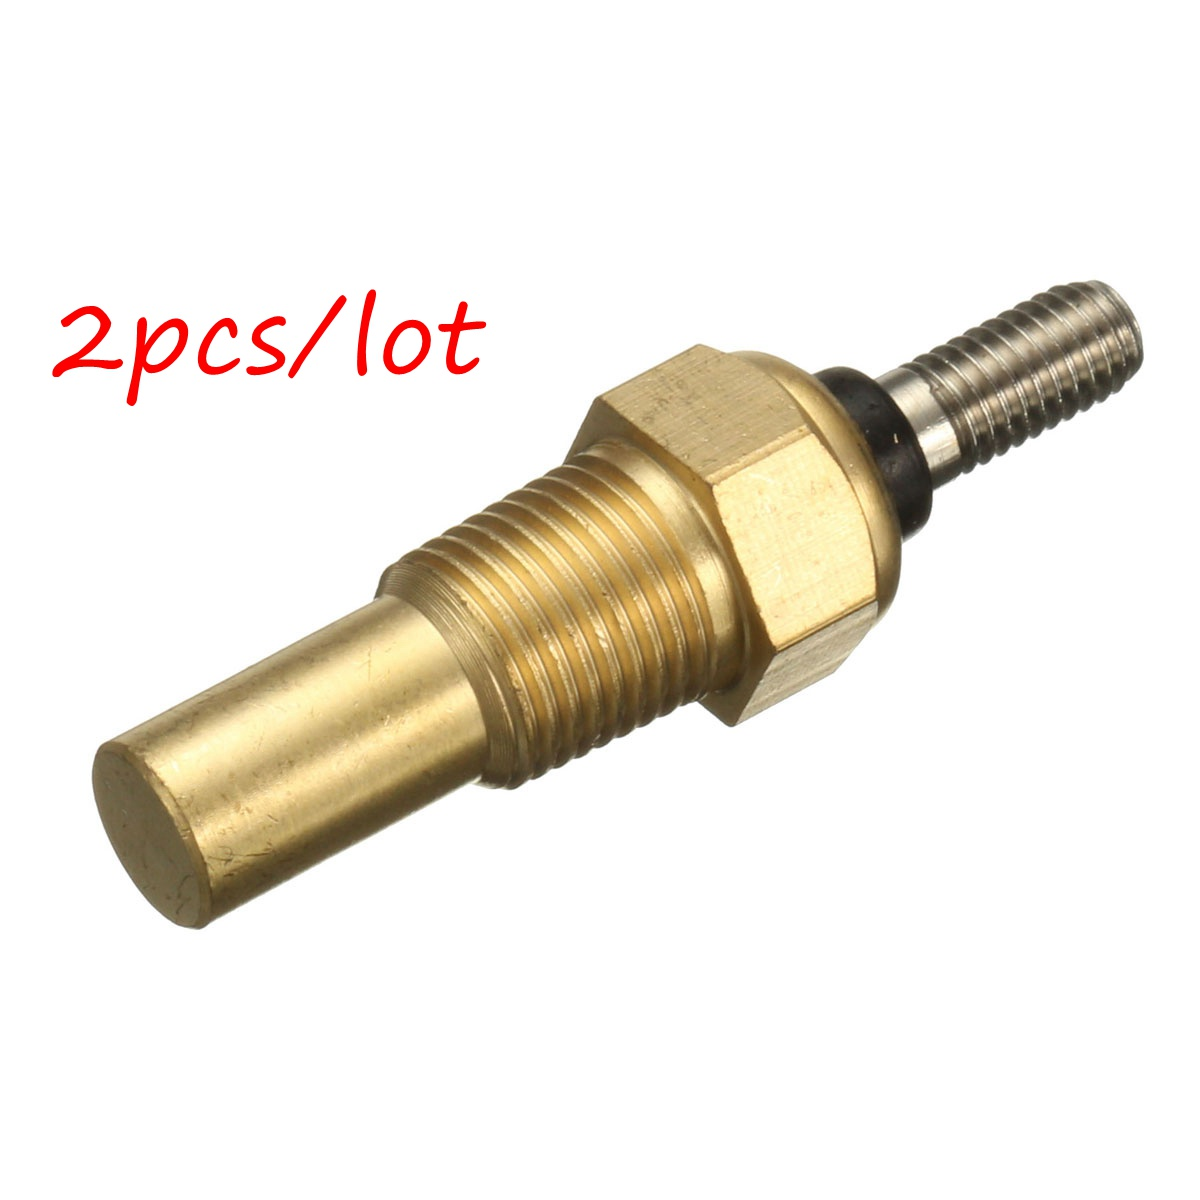 2pcs Universal Car Oil Water Temperature Temp 1/8 NPT Sensor Sender 0 to 150 Degrees2pcs Universal Car Oil Water Temperature Temp 1/8 NPT Sensor Sender 0 to 150 Degrees